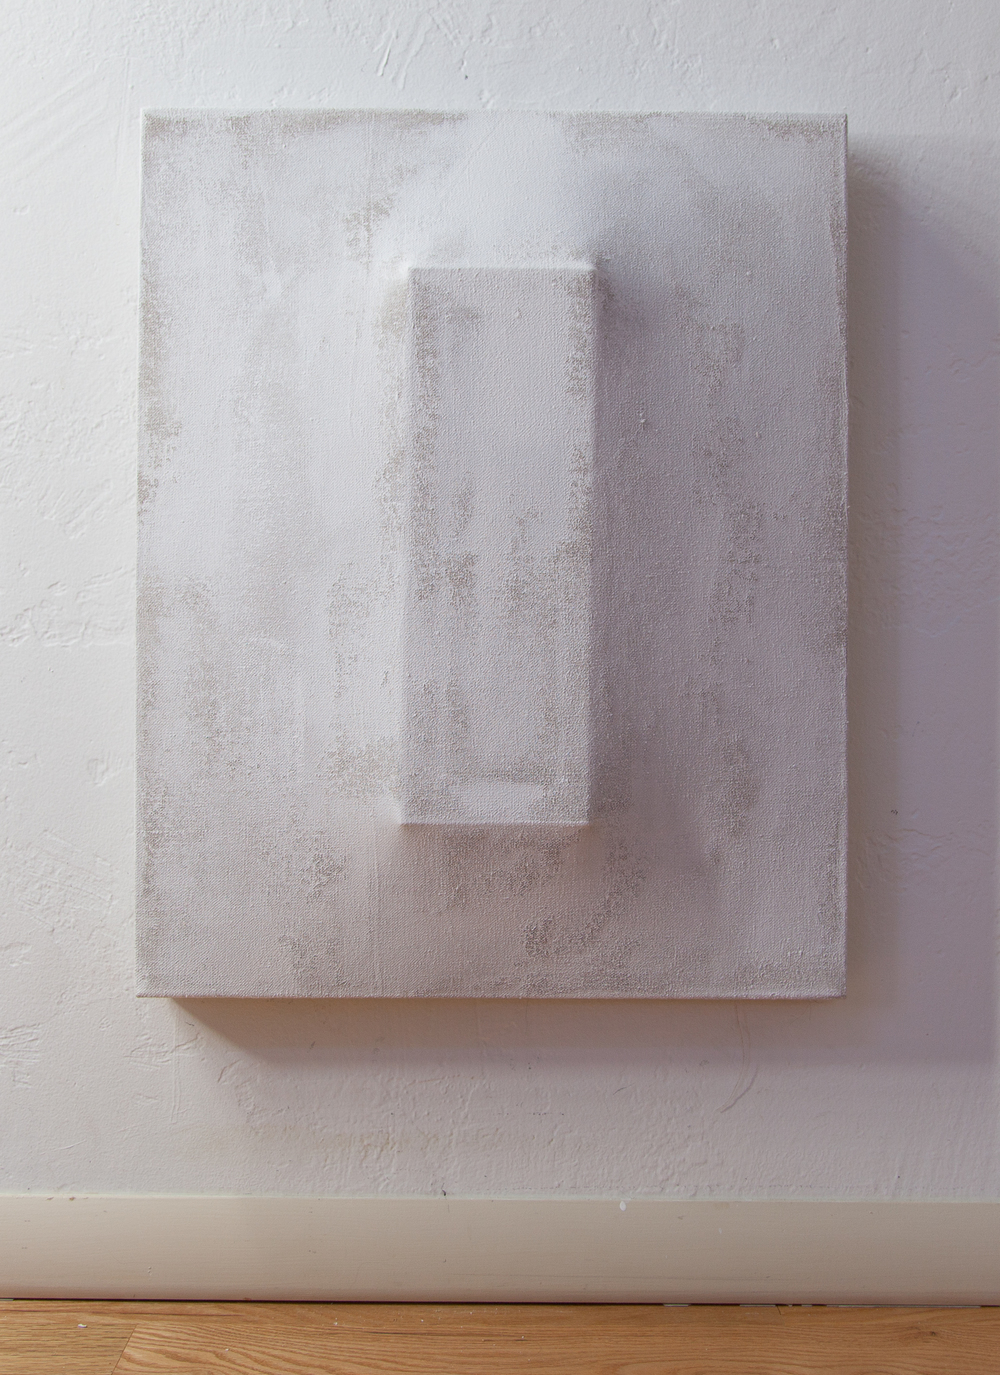 There's a Block in the Void (1244) , 2015, gesso on shaped canvas, 20 x 16 inches, Installation *